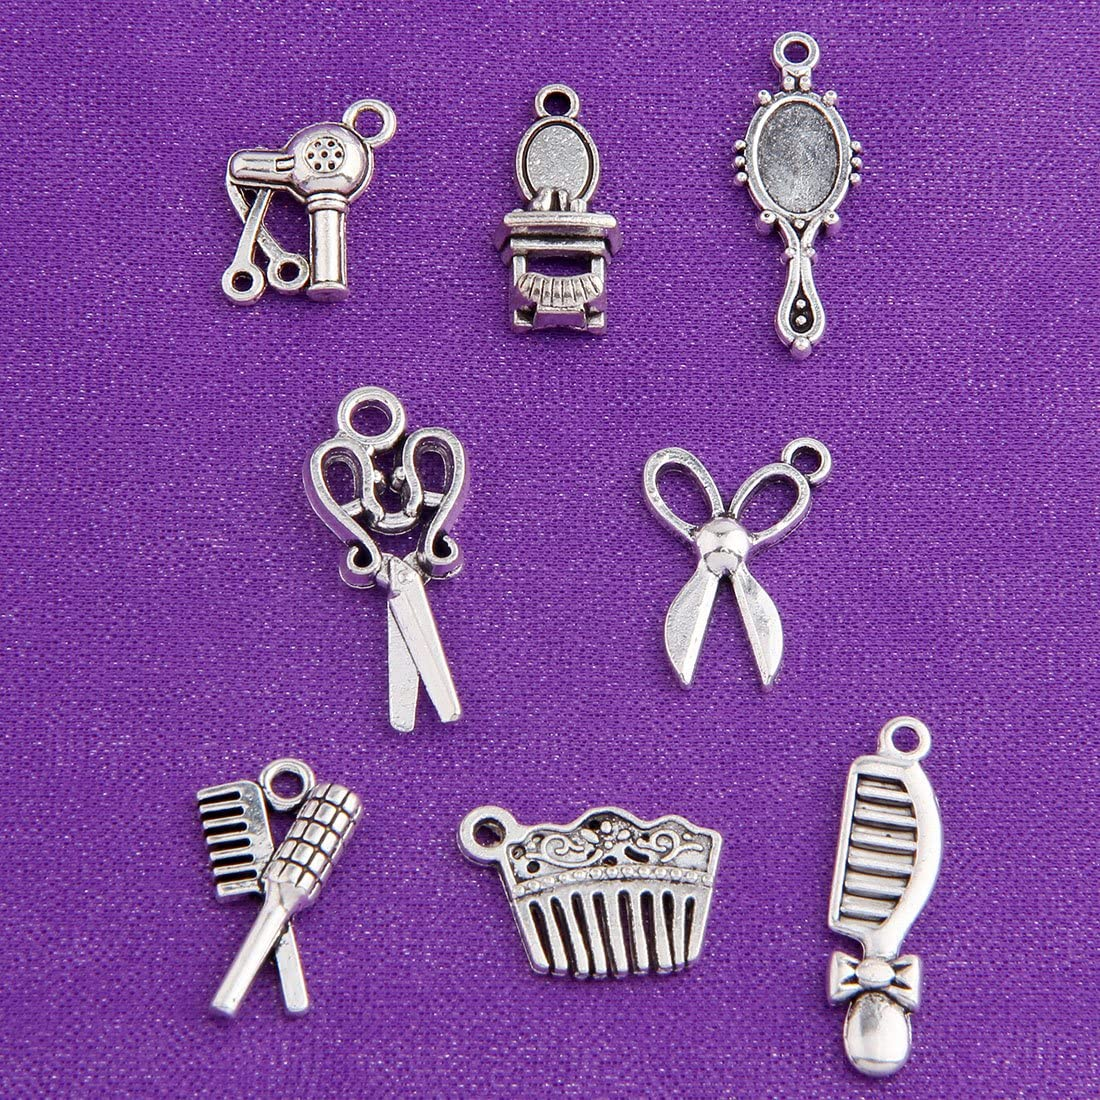 BNQL 16pcs Hairstylist Charm Collection for DIY Jewelry Making